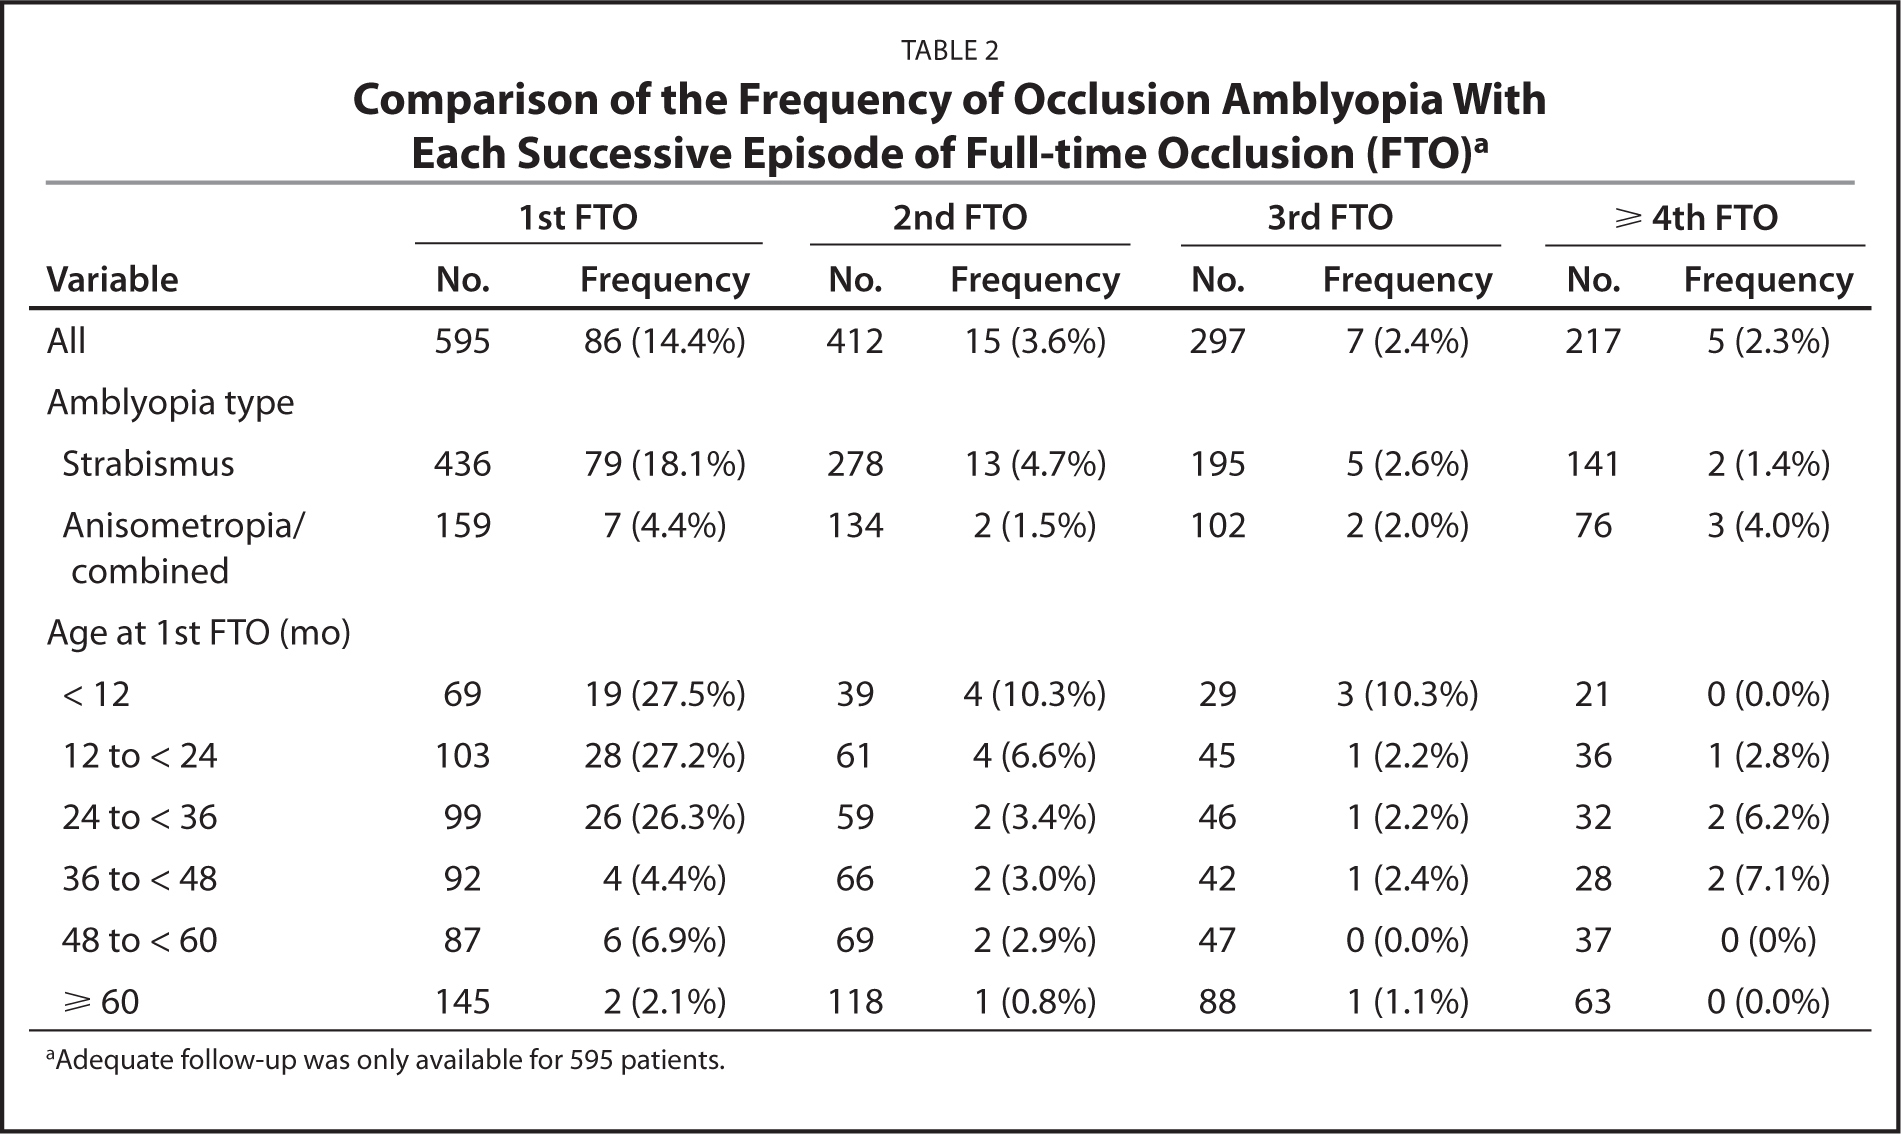 Comparison of the Frequency of Occlusion Amblyopia With Each Successive Episode of Full-time Occlusion (FTO)a